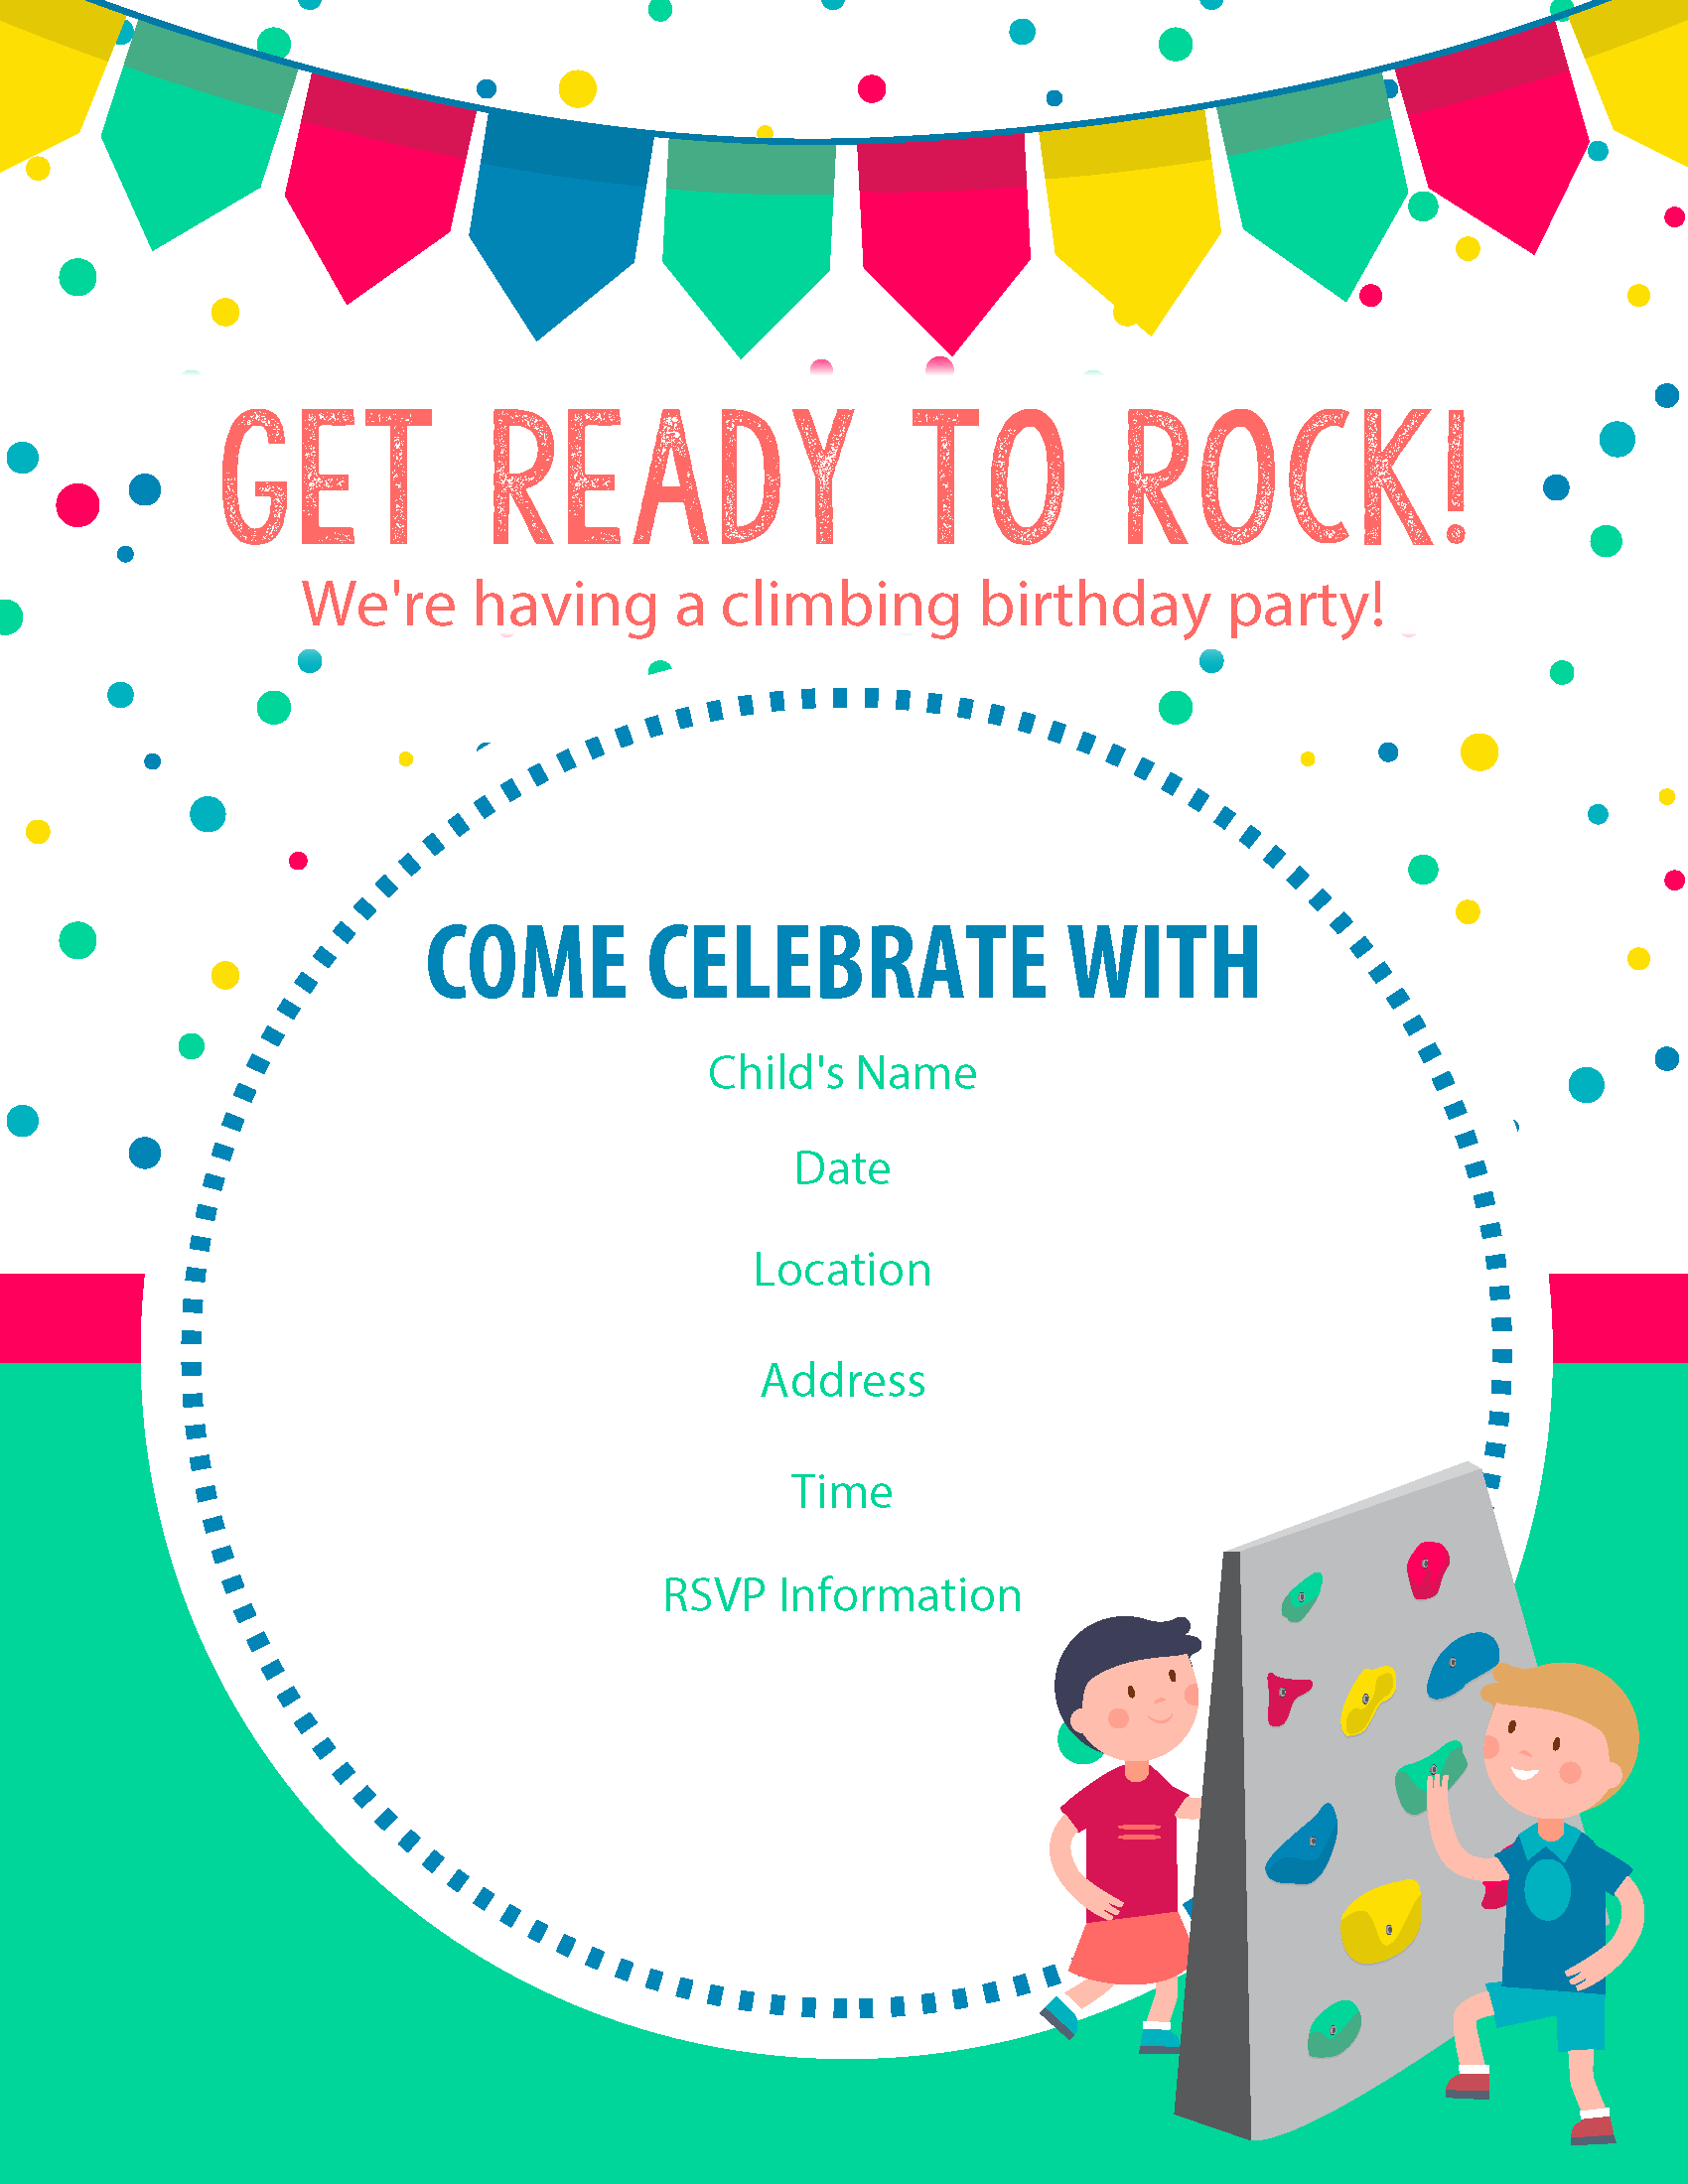 Happy Birthday! Free Rock Climbing Birthday Party Invitations